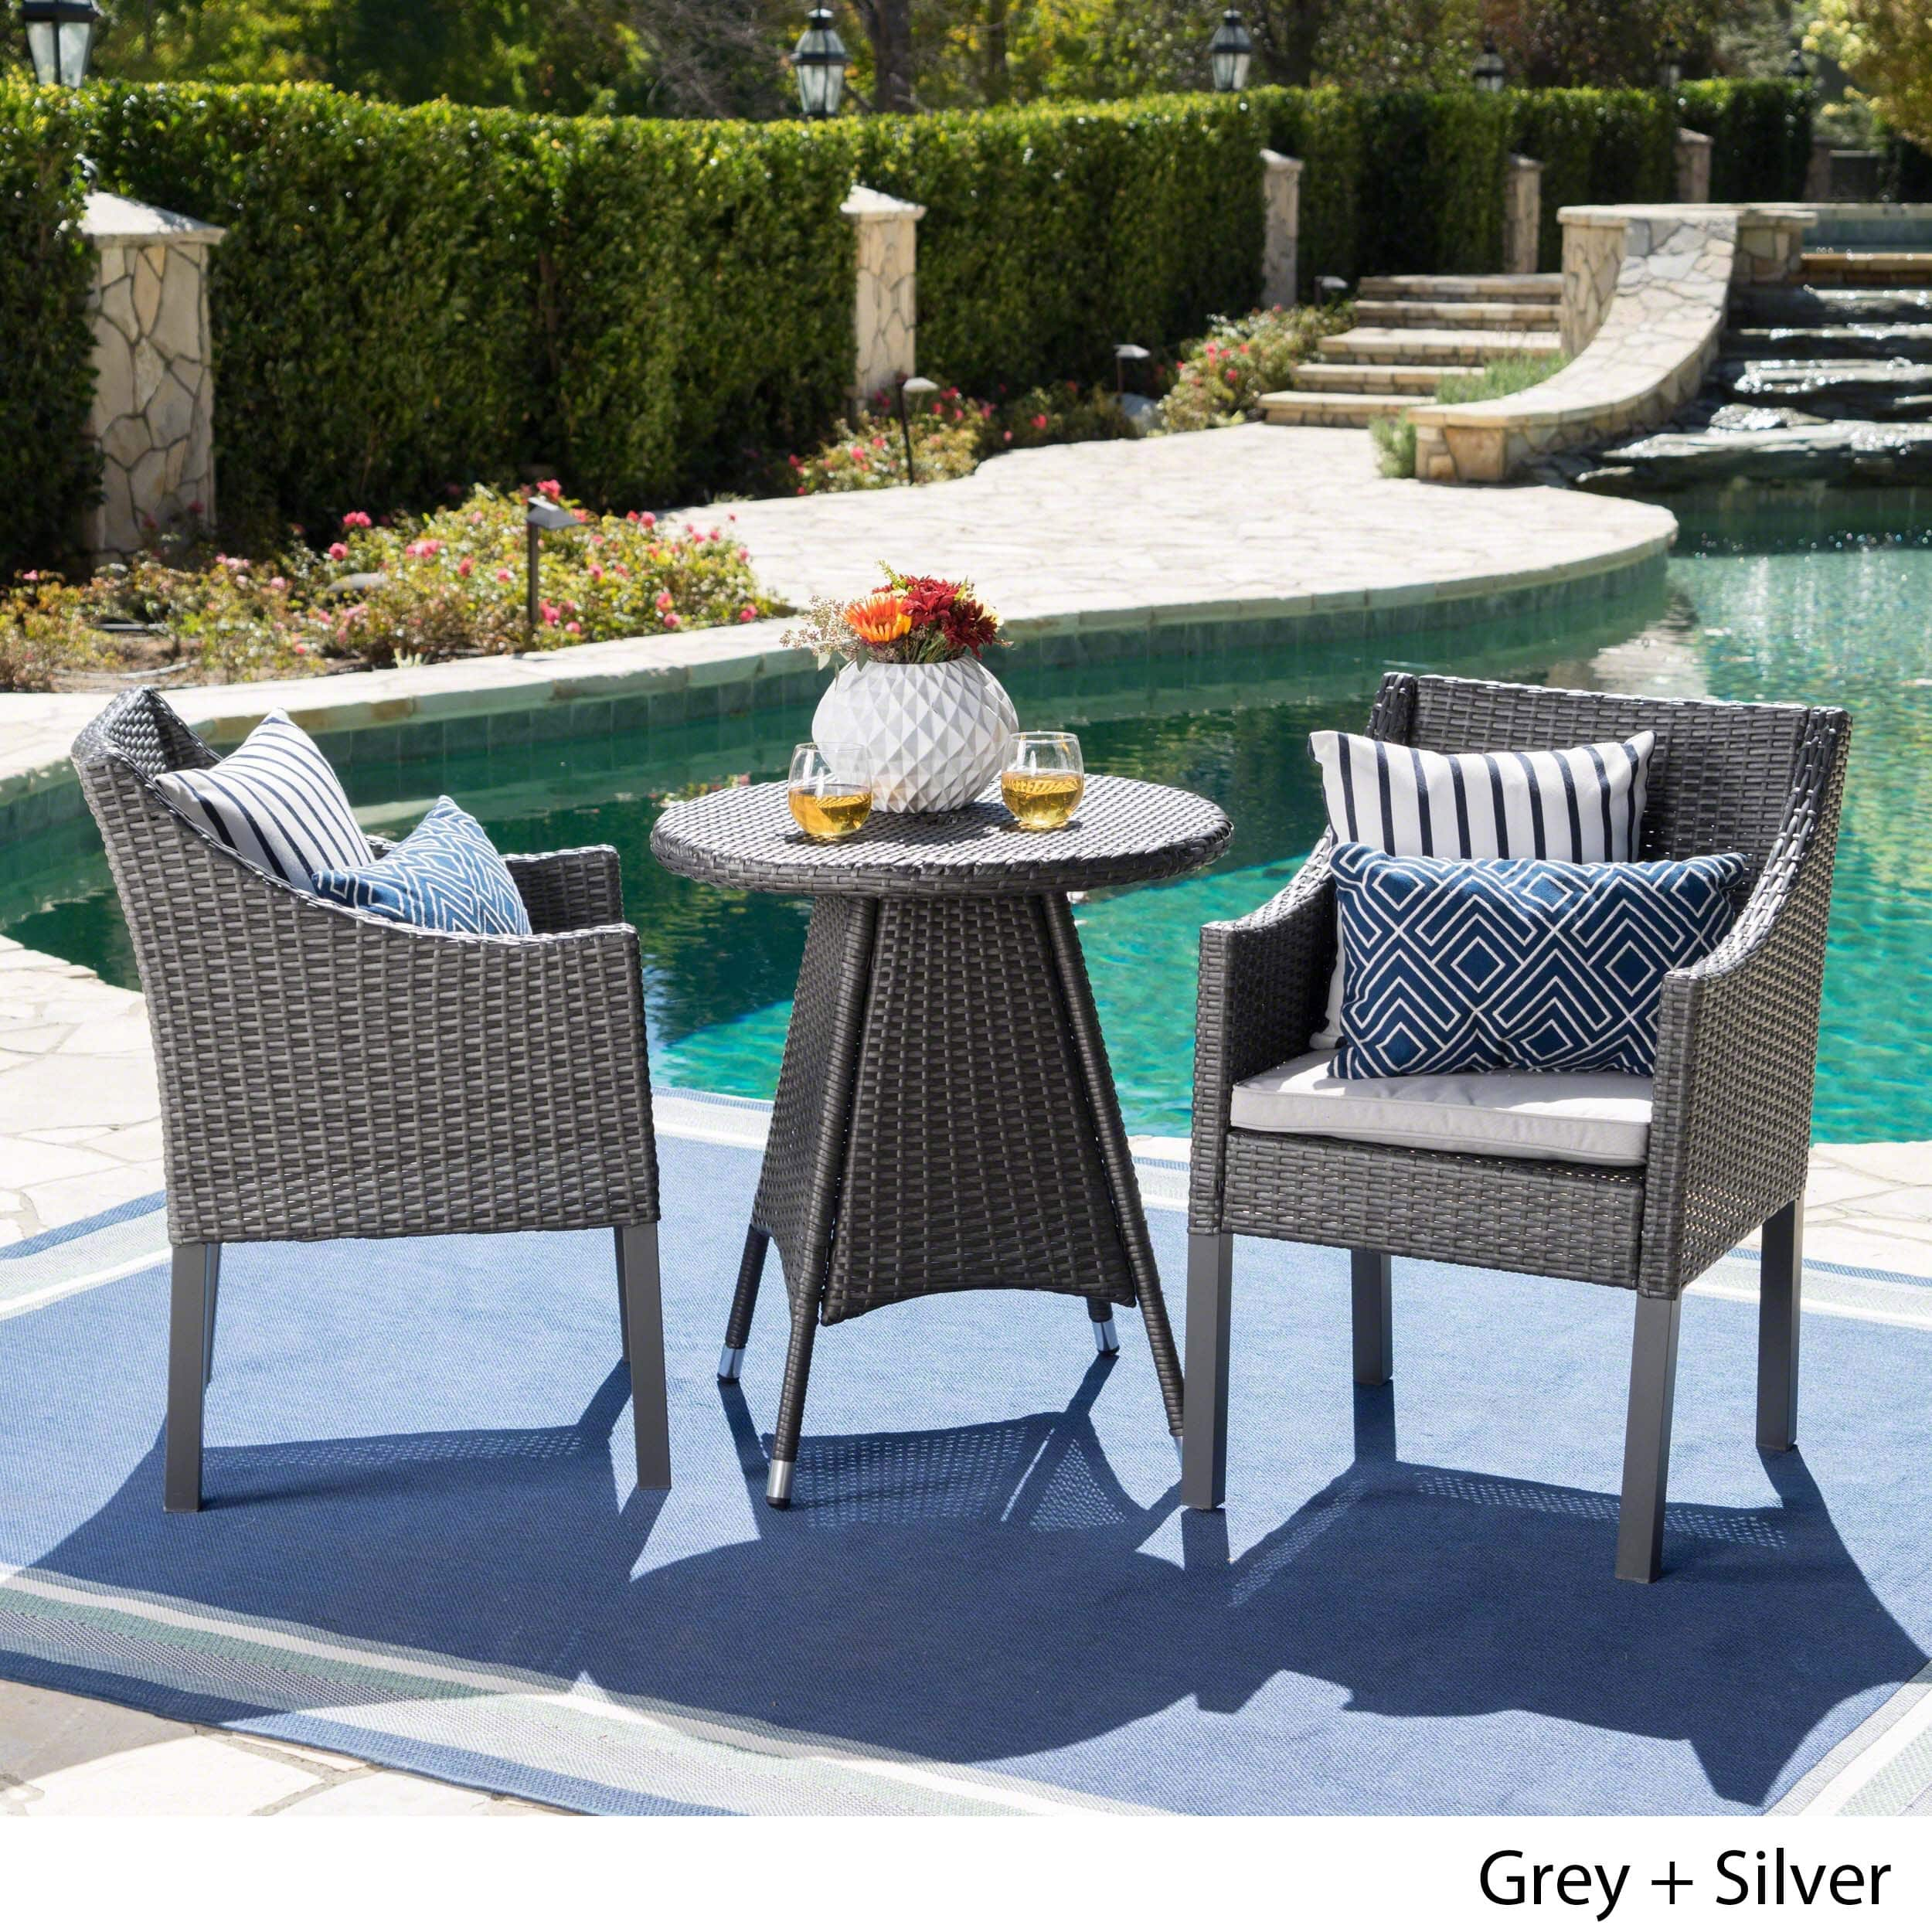 Christopher Knight Home Franco Outdoor 3-Piece Round Wicker Bistro Chat Set with Umbrella Hole & Cushions by